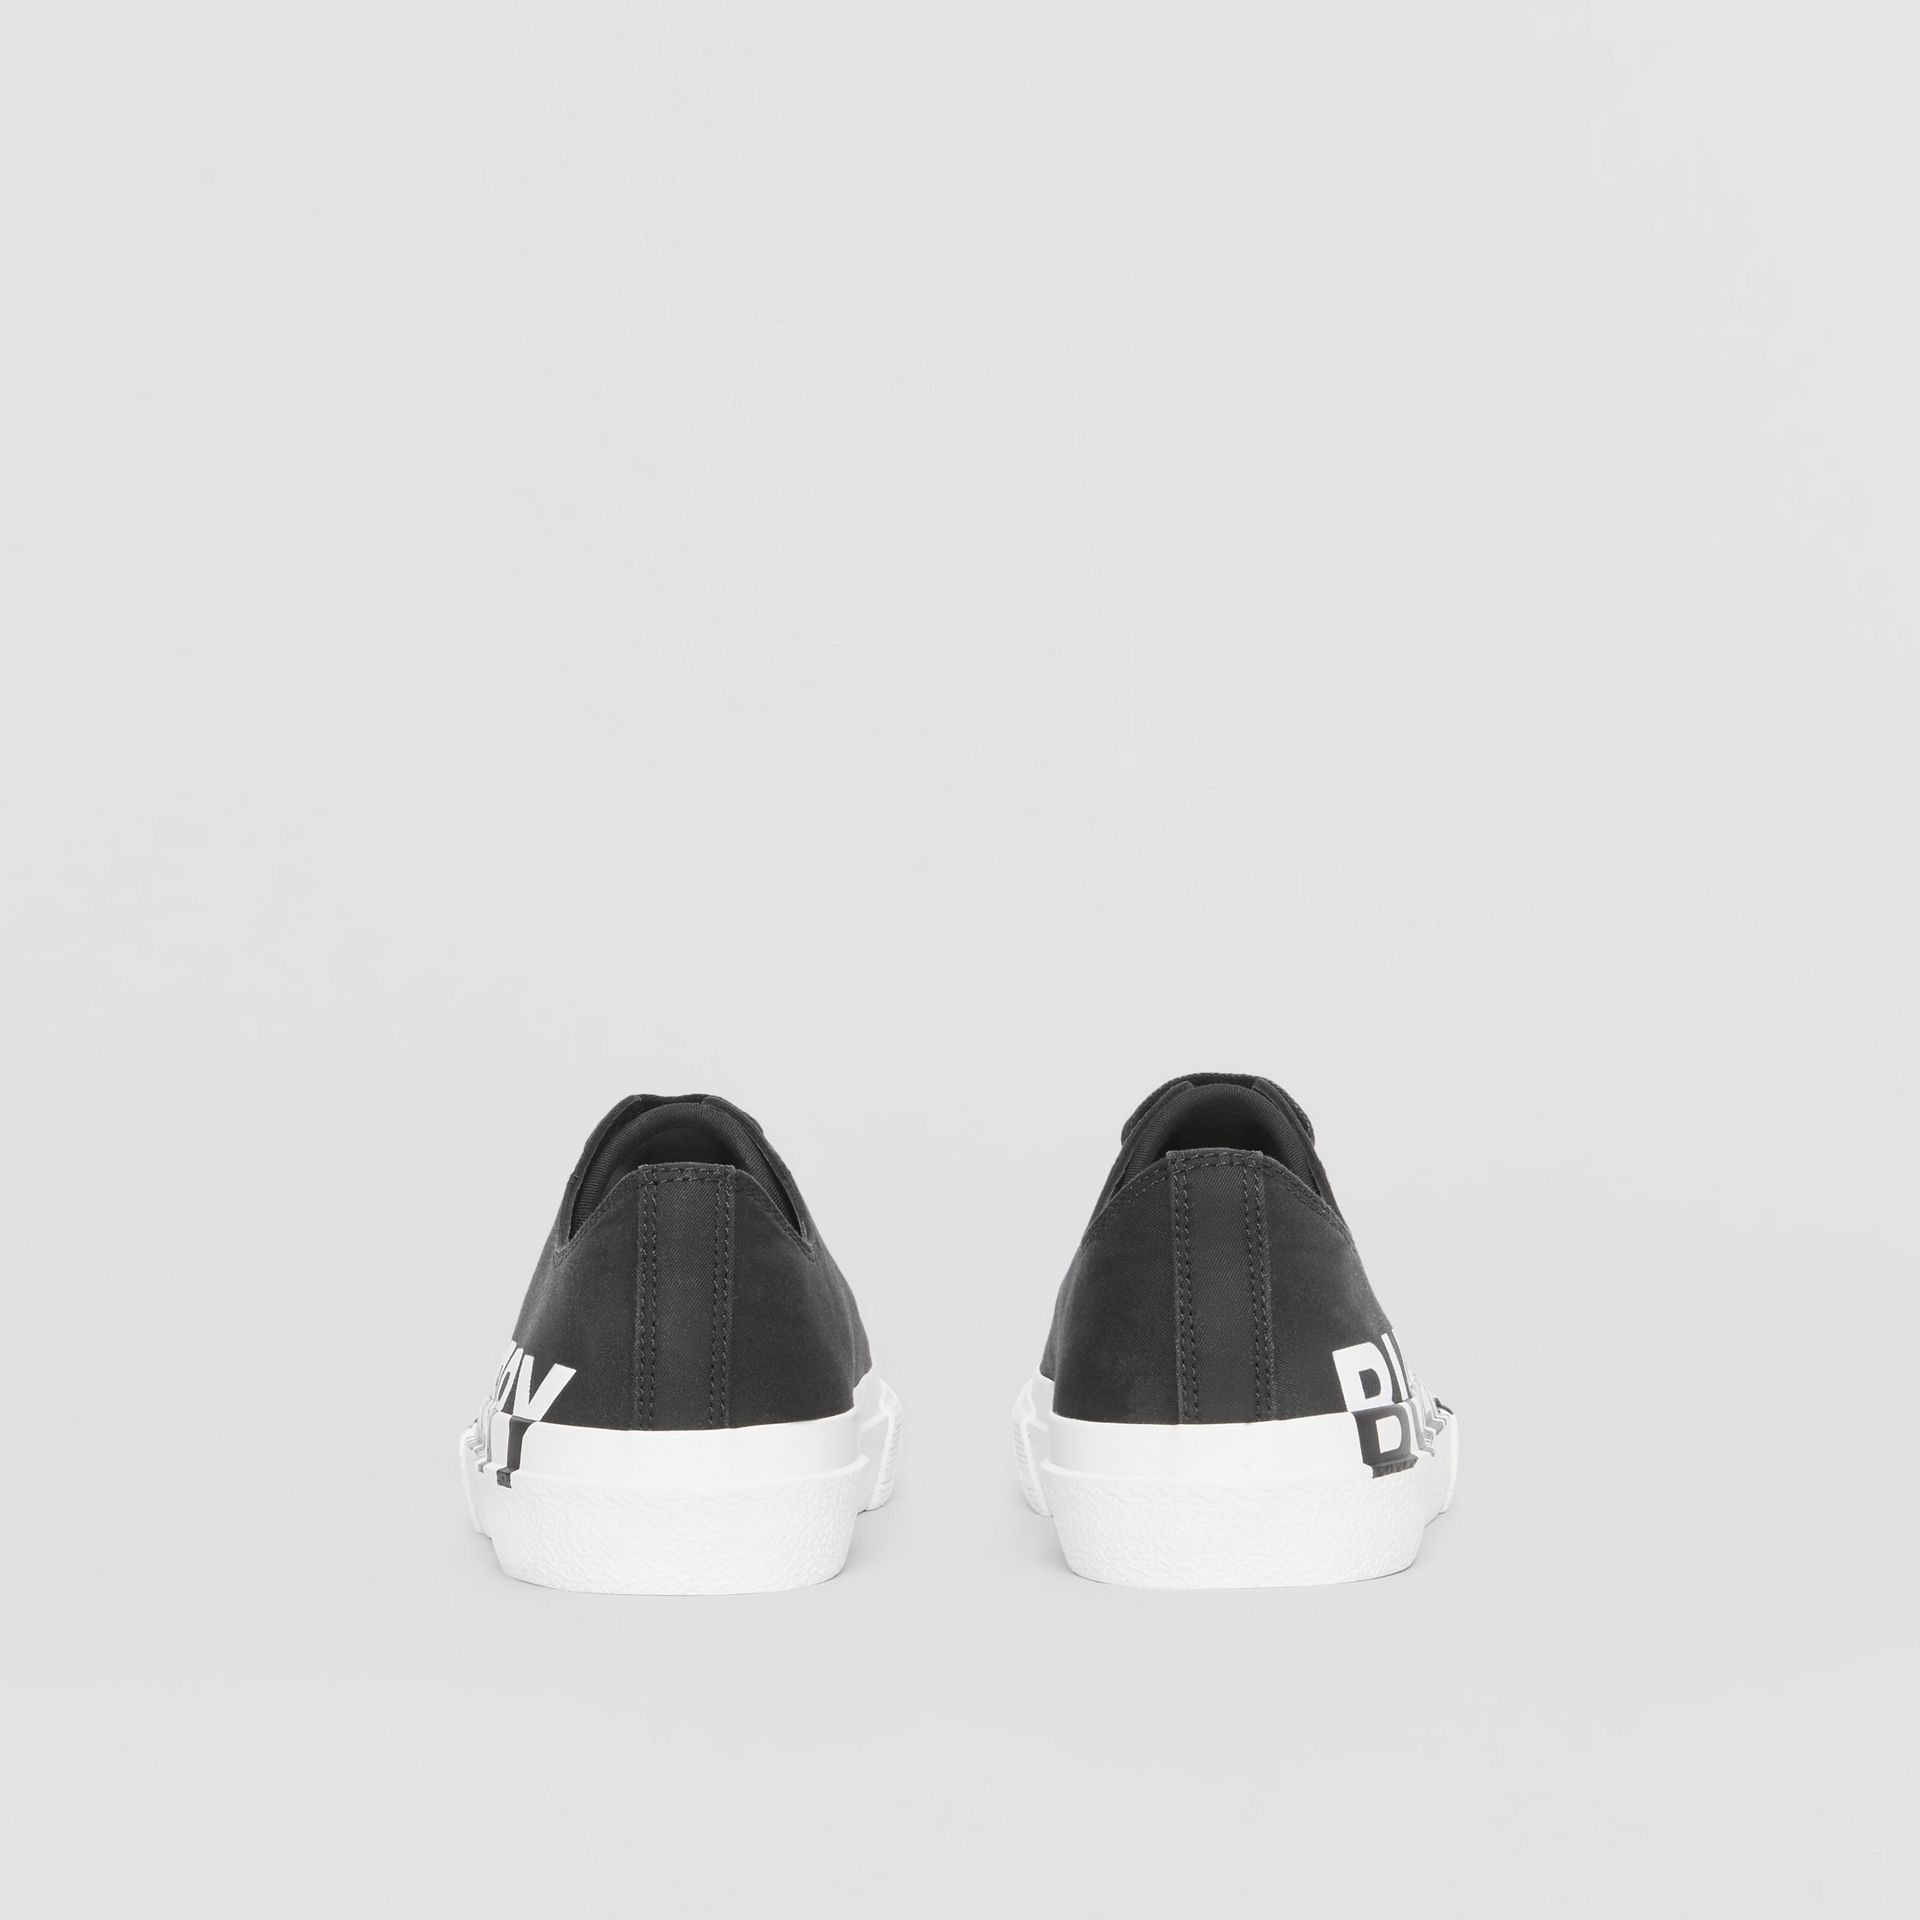 Logo Print Two-tone Cotton Gabardine Sneakers in Black/white - Women | Burberry Hong Kong S.A.R - gallery image 4